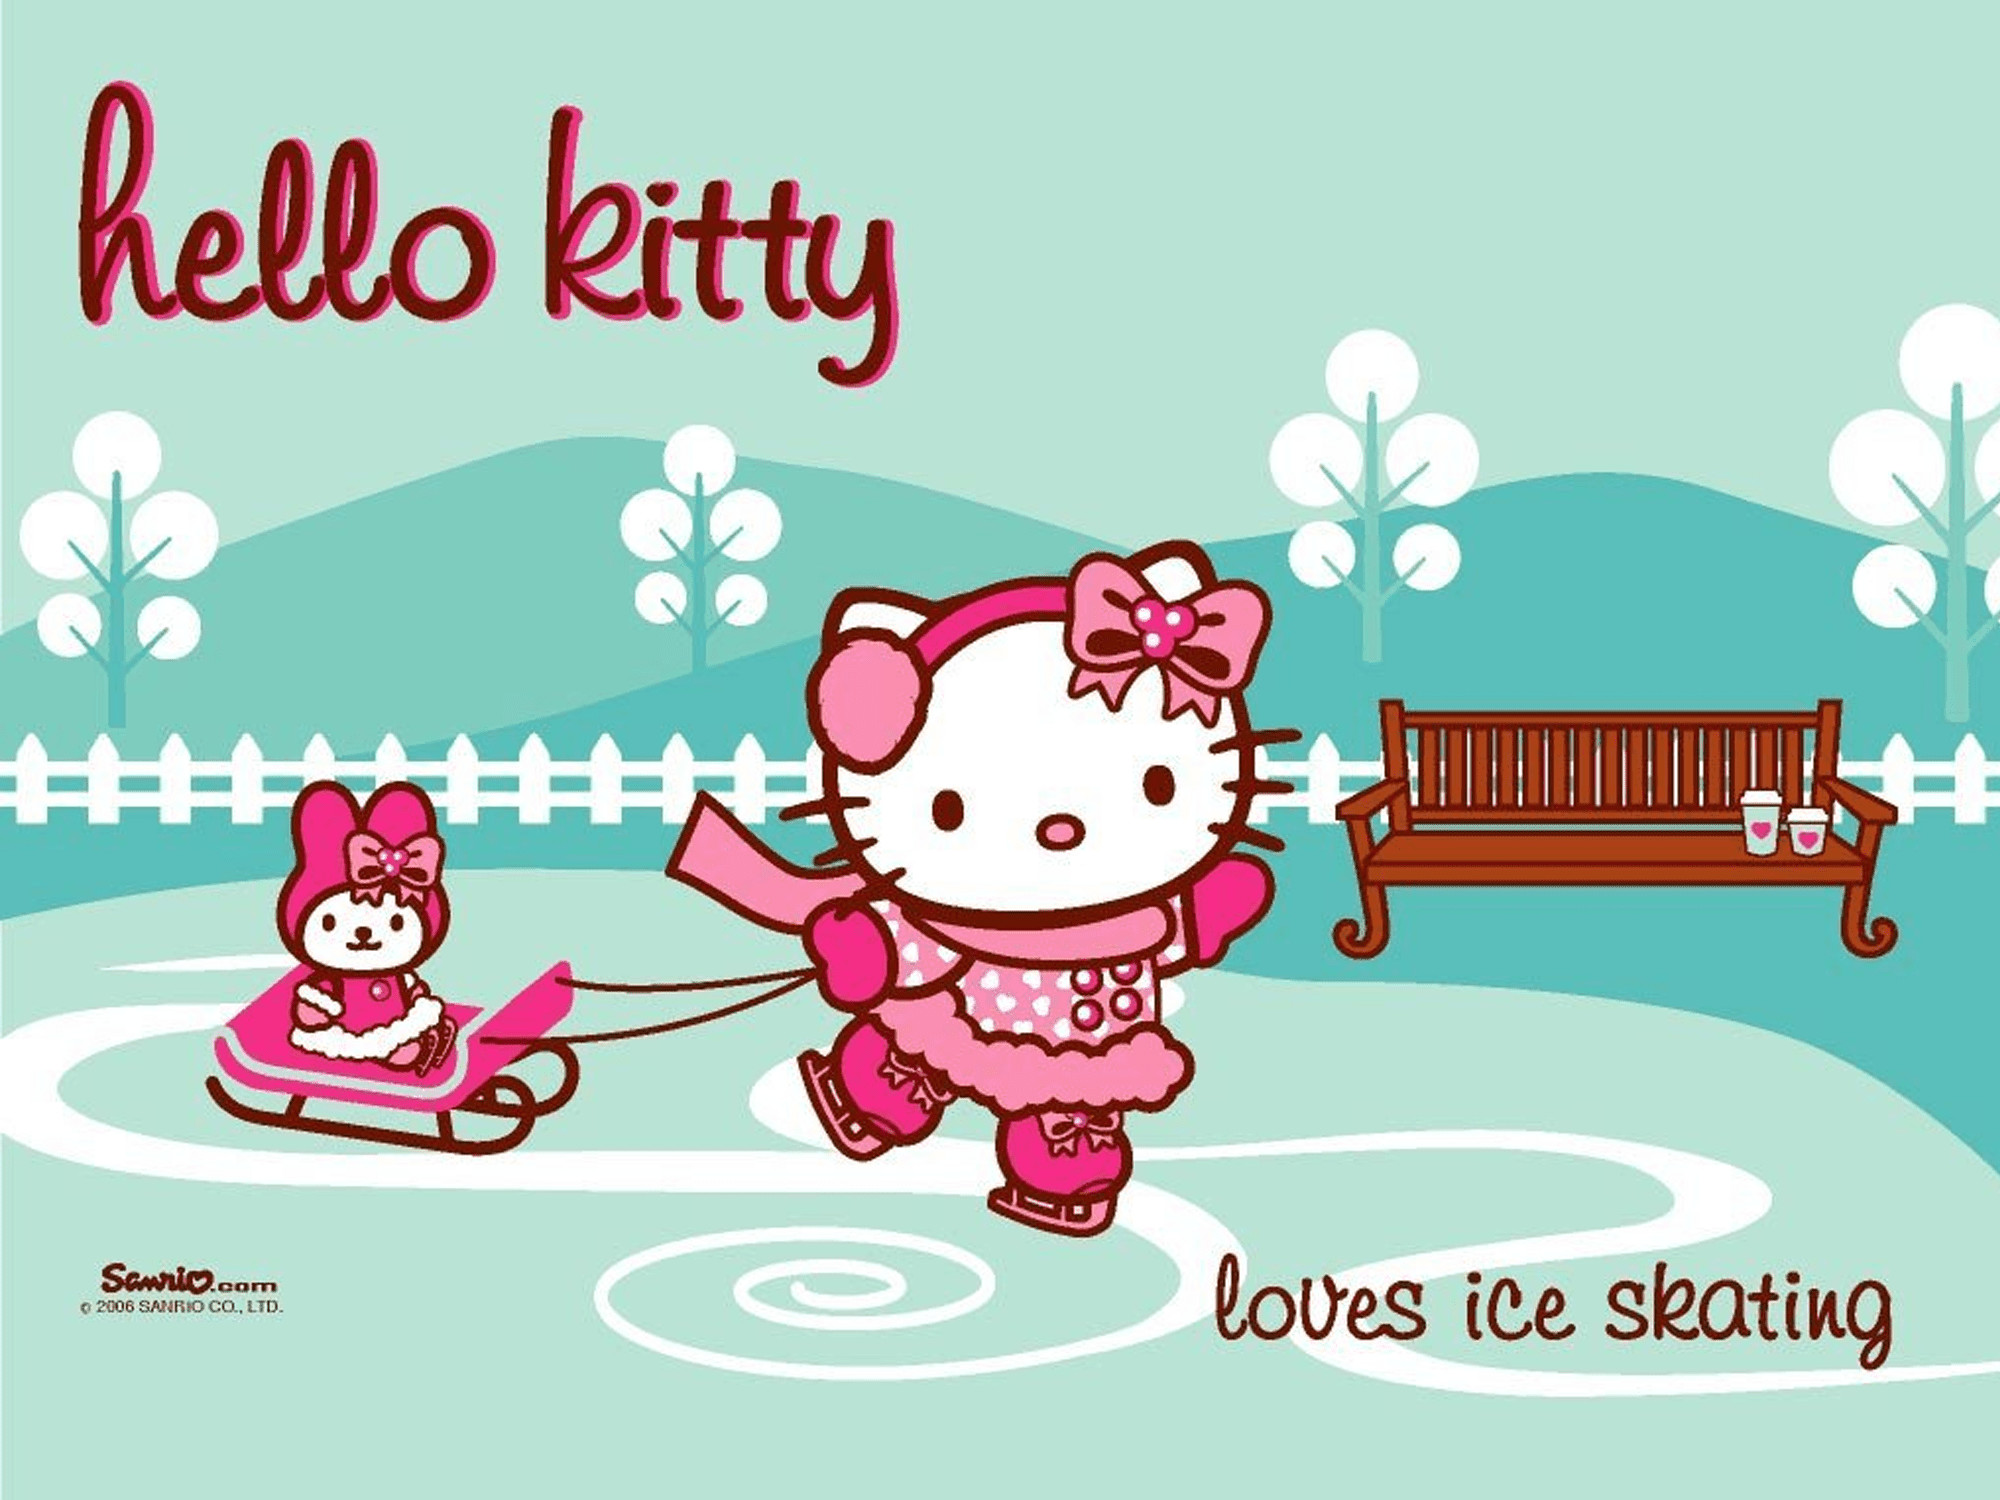 2000x1500 hello kitty background wallpaper 6ad99815b612b7f470fc3924add50815